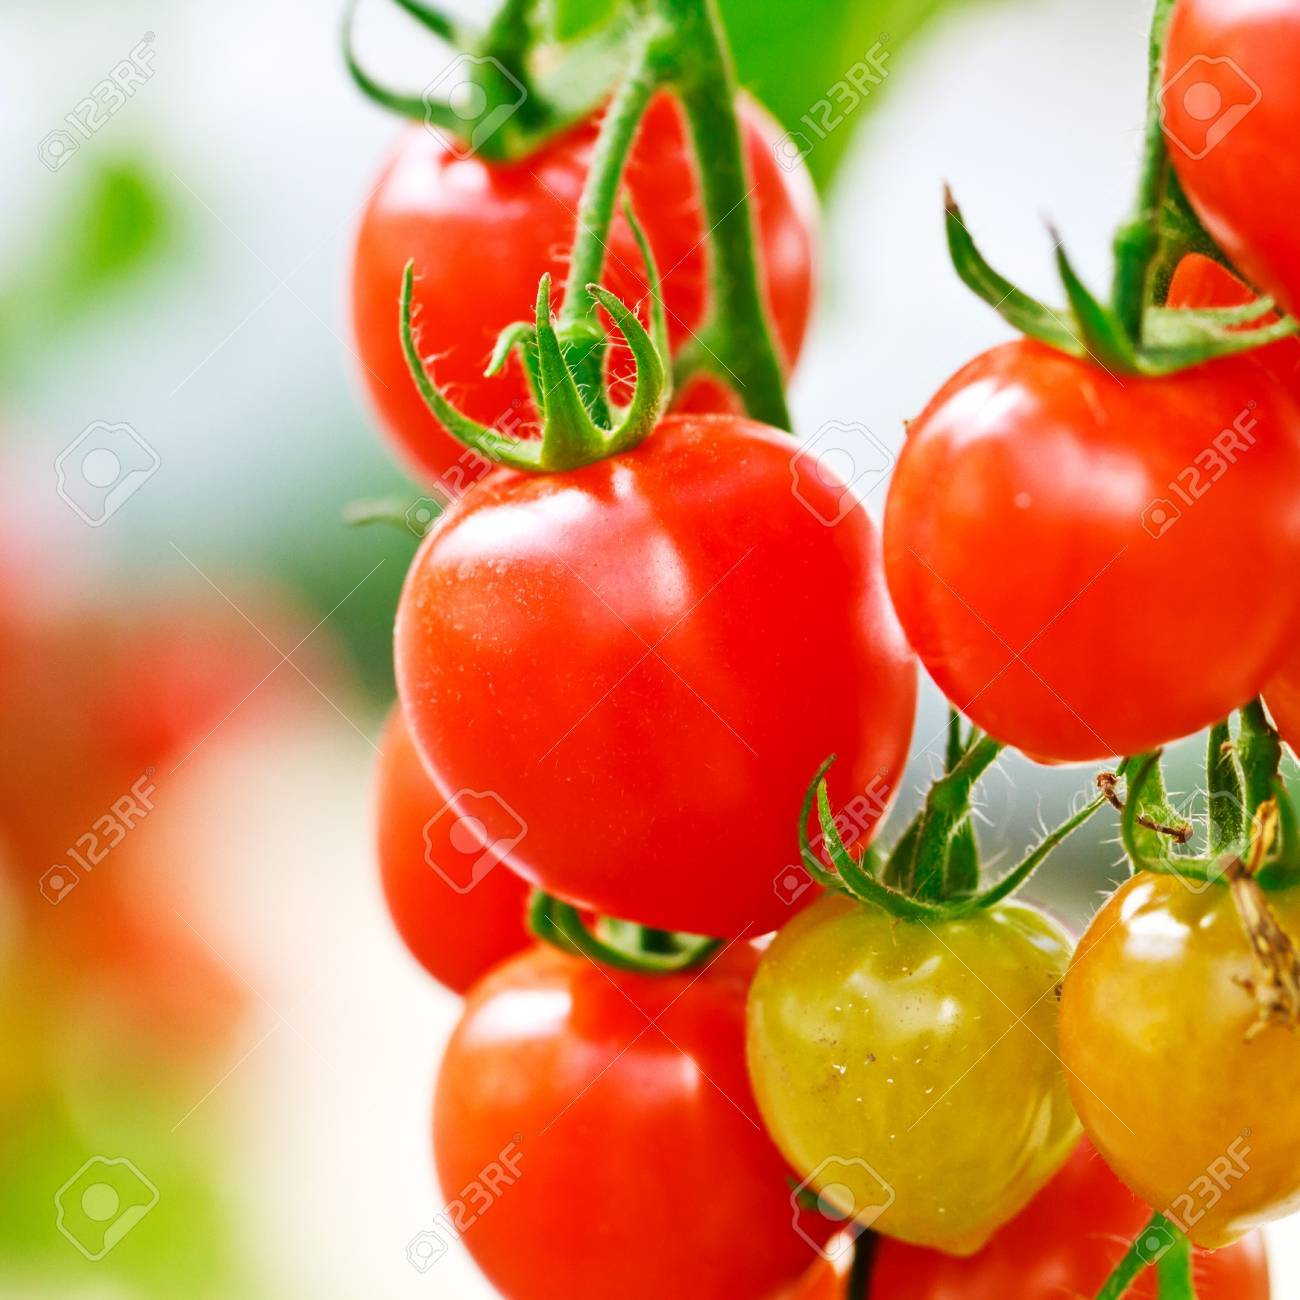 RIpe garden tomatoes ready for picking Stock Photo - 13088451